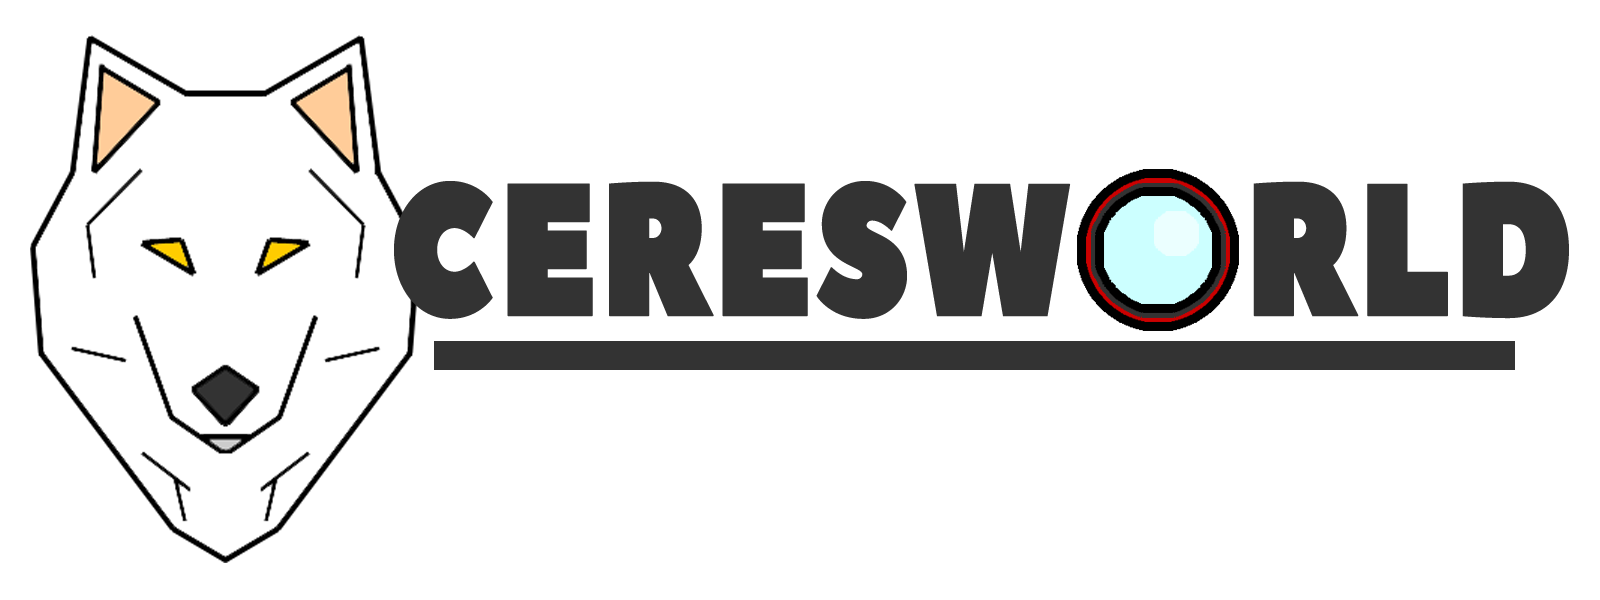 CERESWORLD.NET